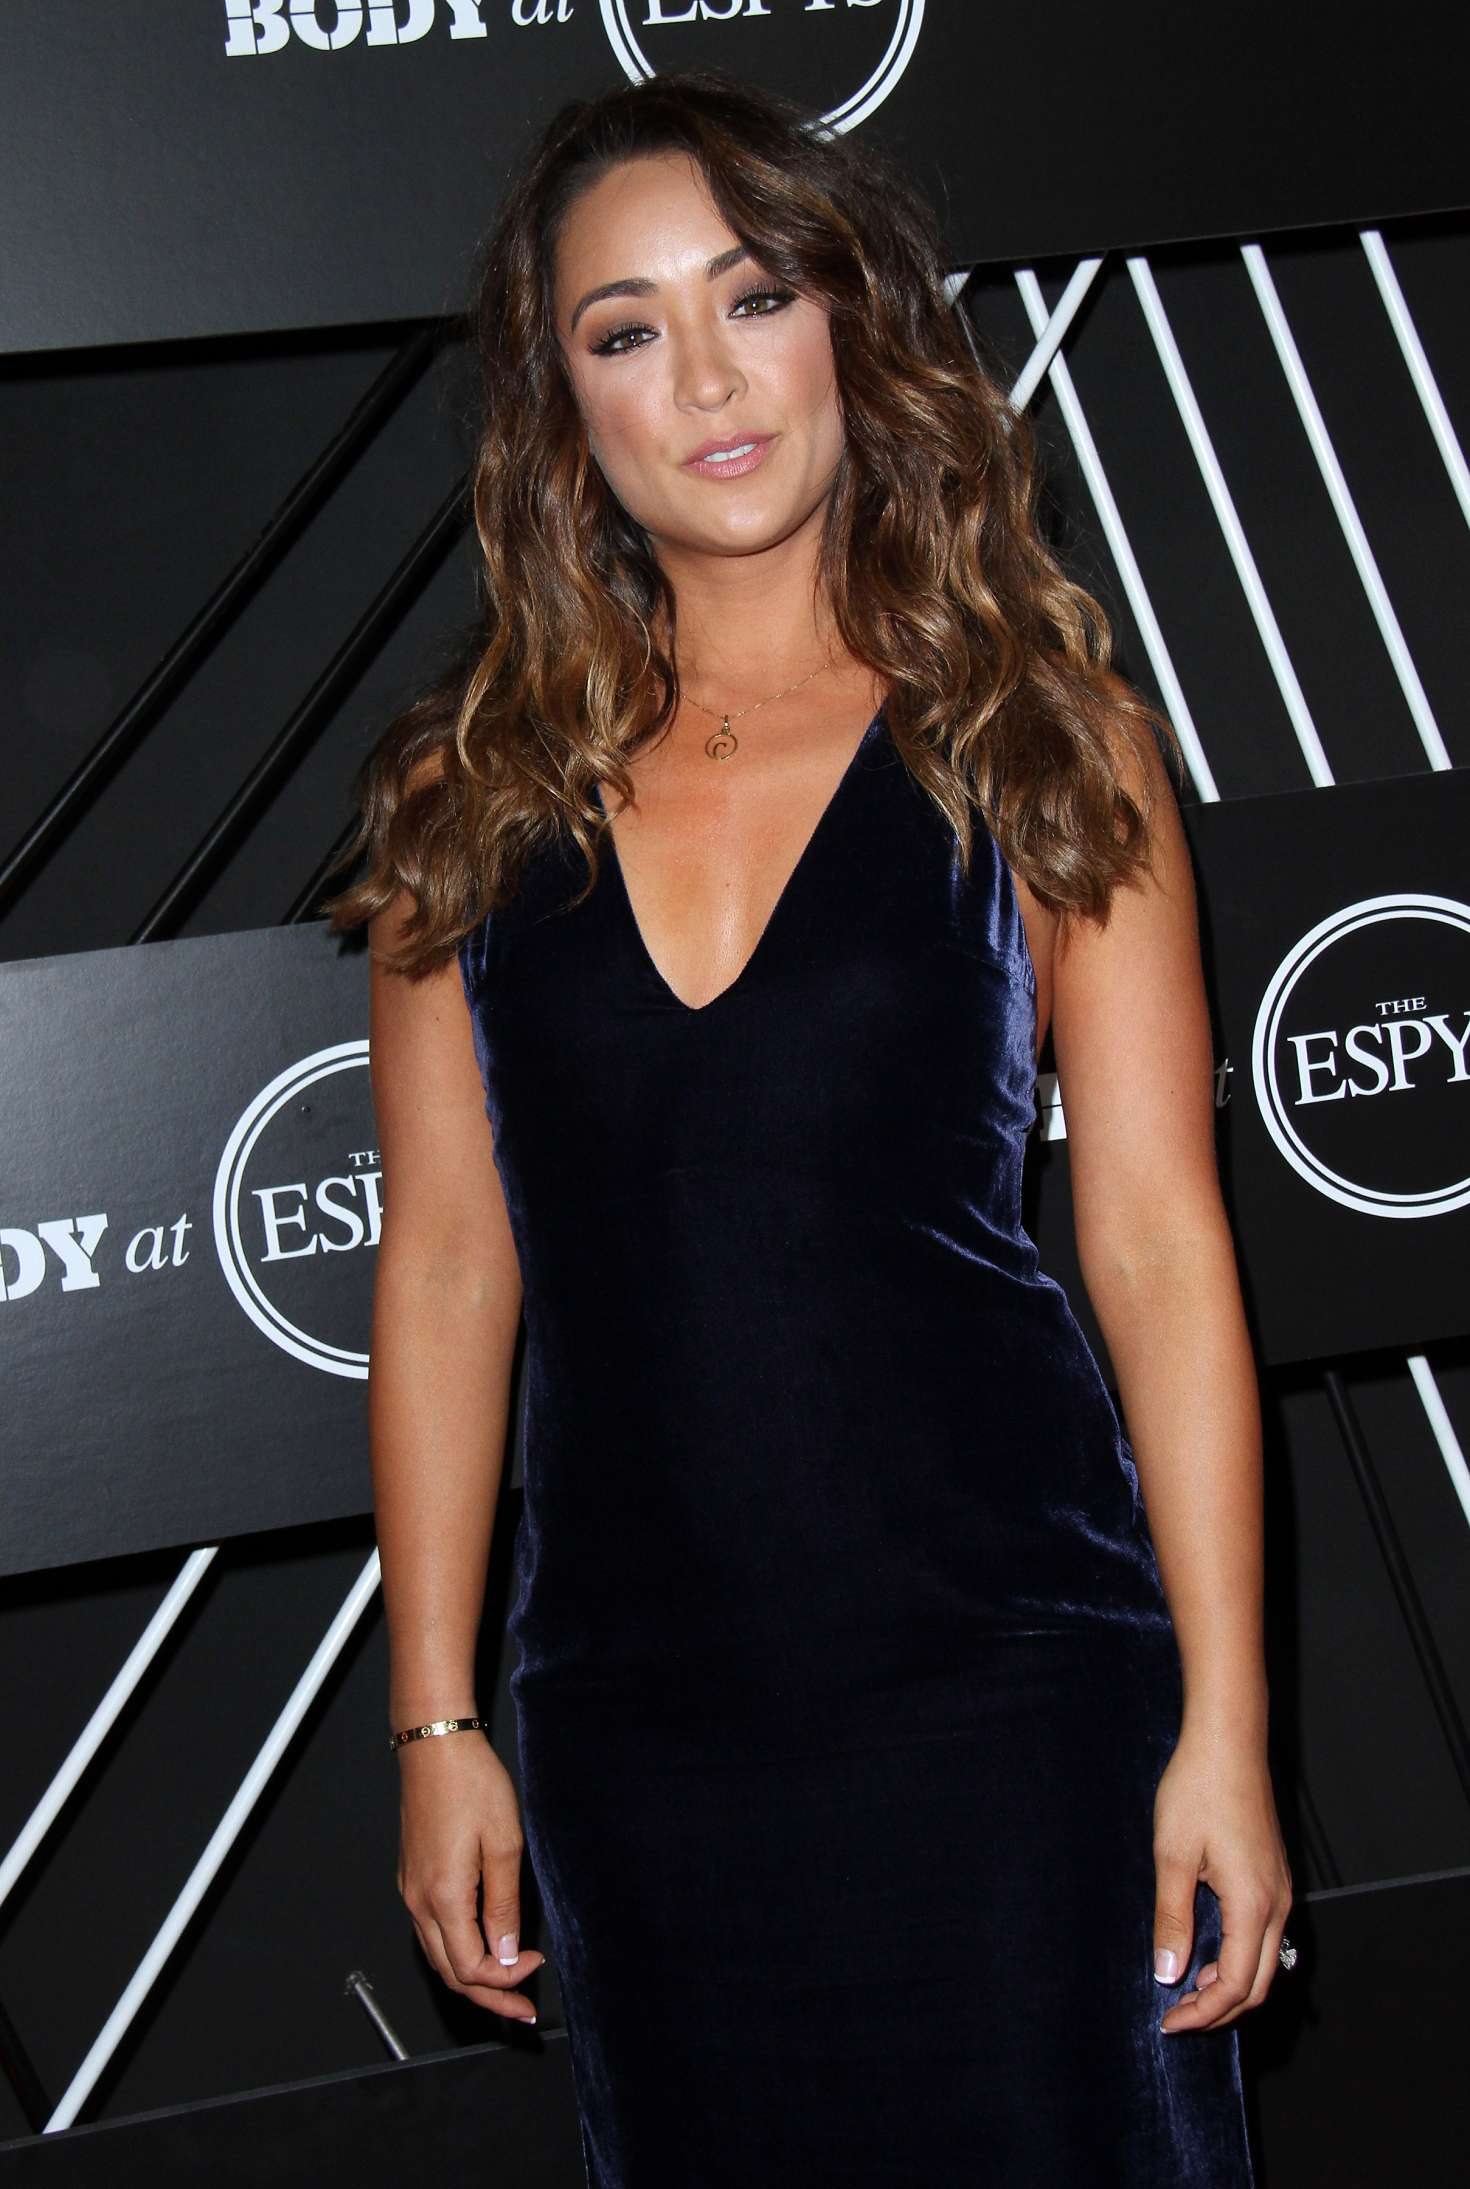 Cassidy Hubbarth - BODY at ESPYS party 2017 in Los Angeles